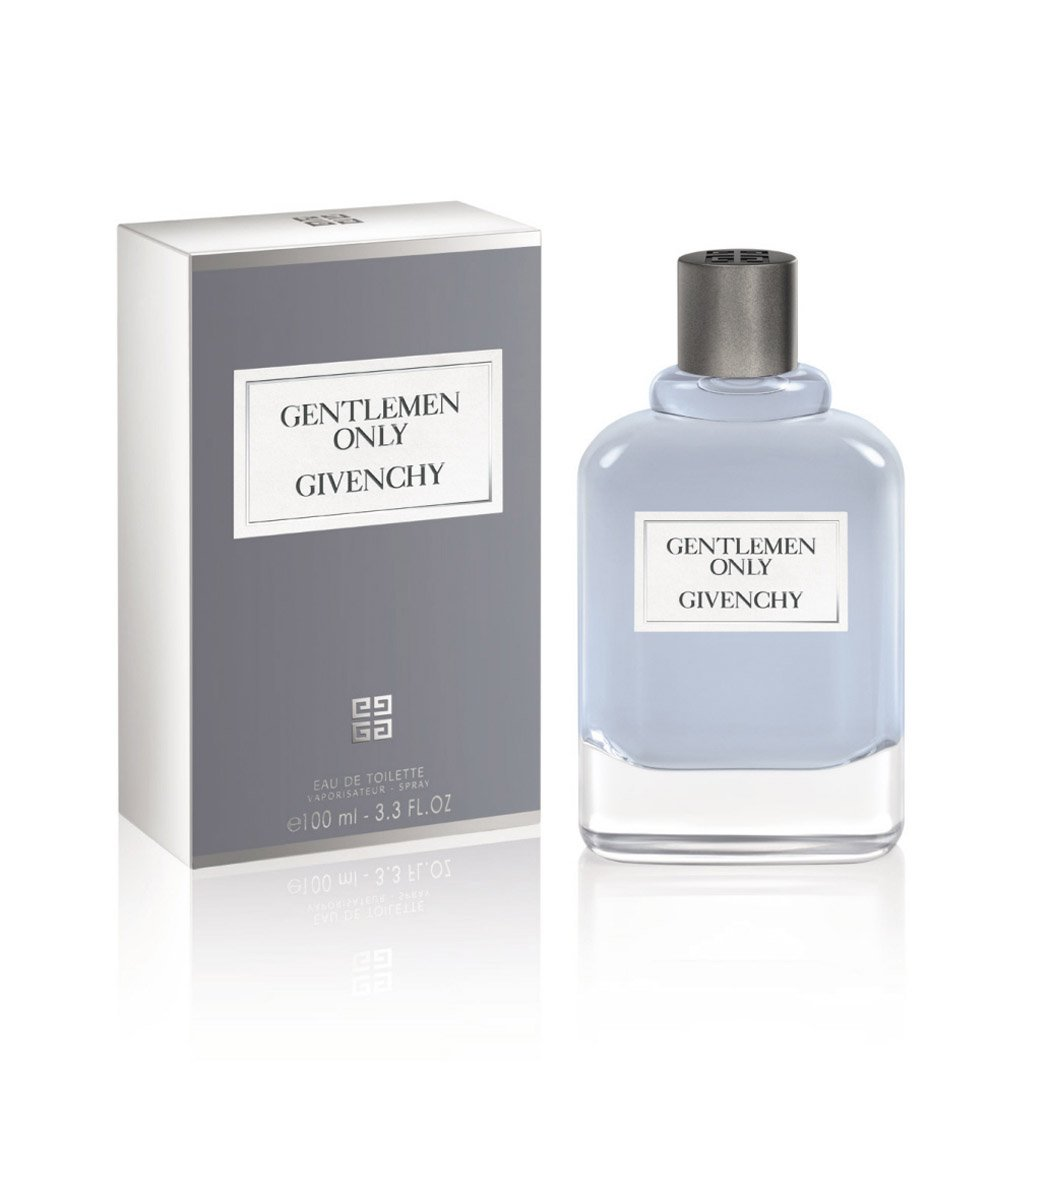 Givenchy Gentlemen Only Eau De Toilette Spray for Men, 100ml, 3.3 Ounce Fragrance Express Canada Inc. GIVP007036